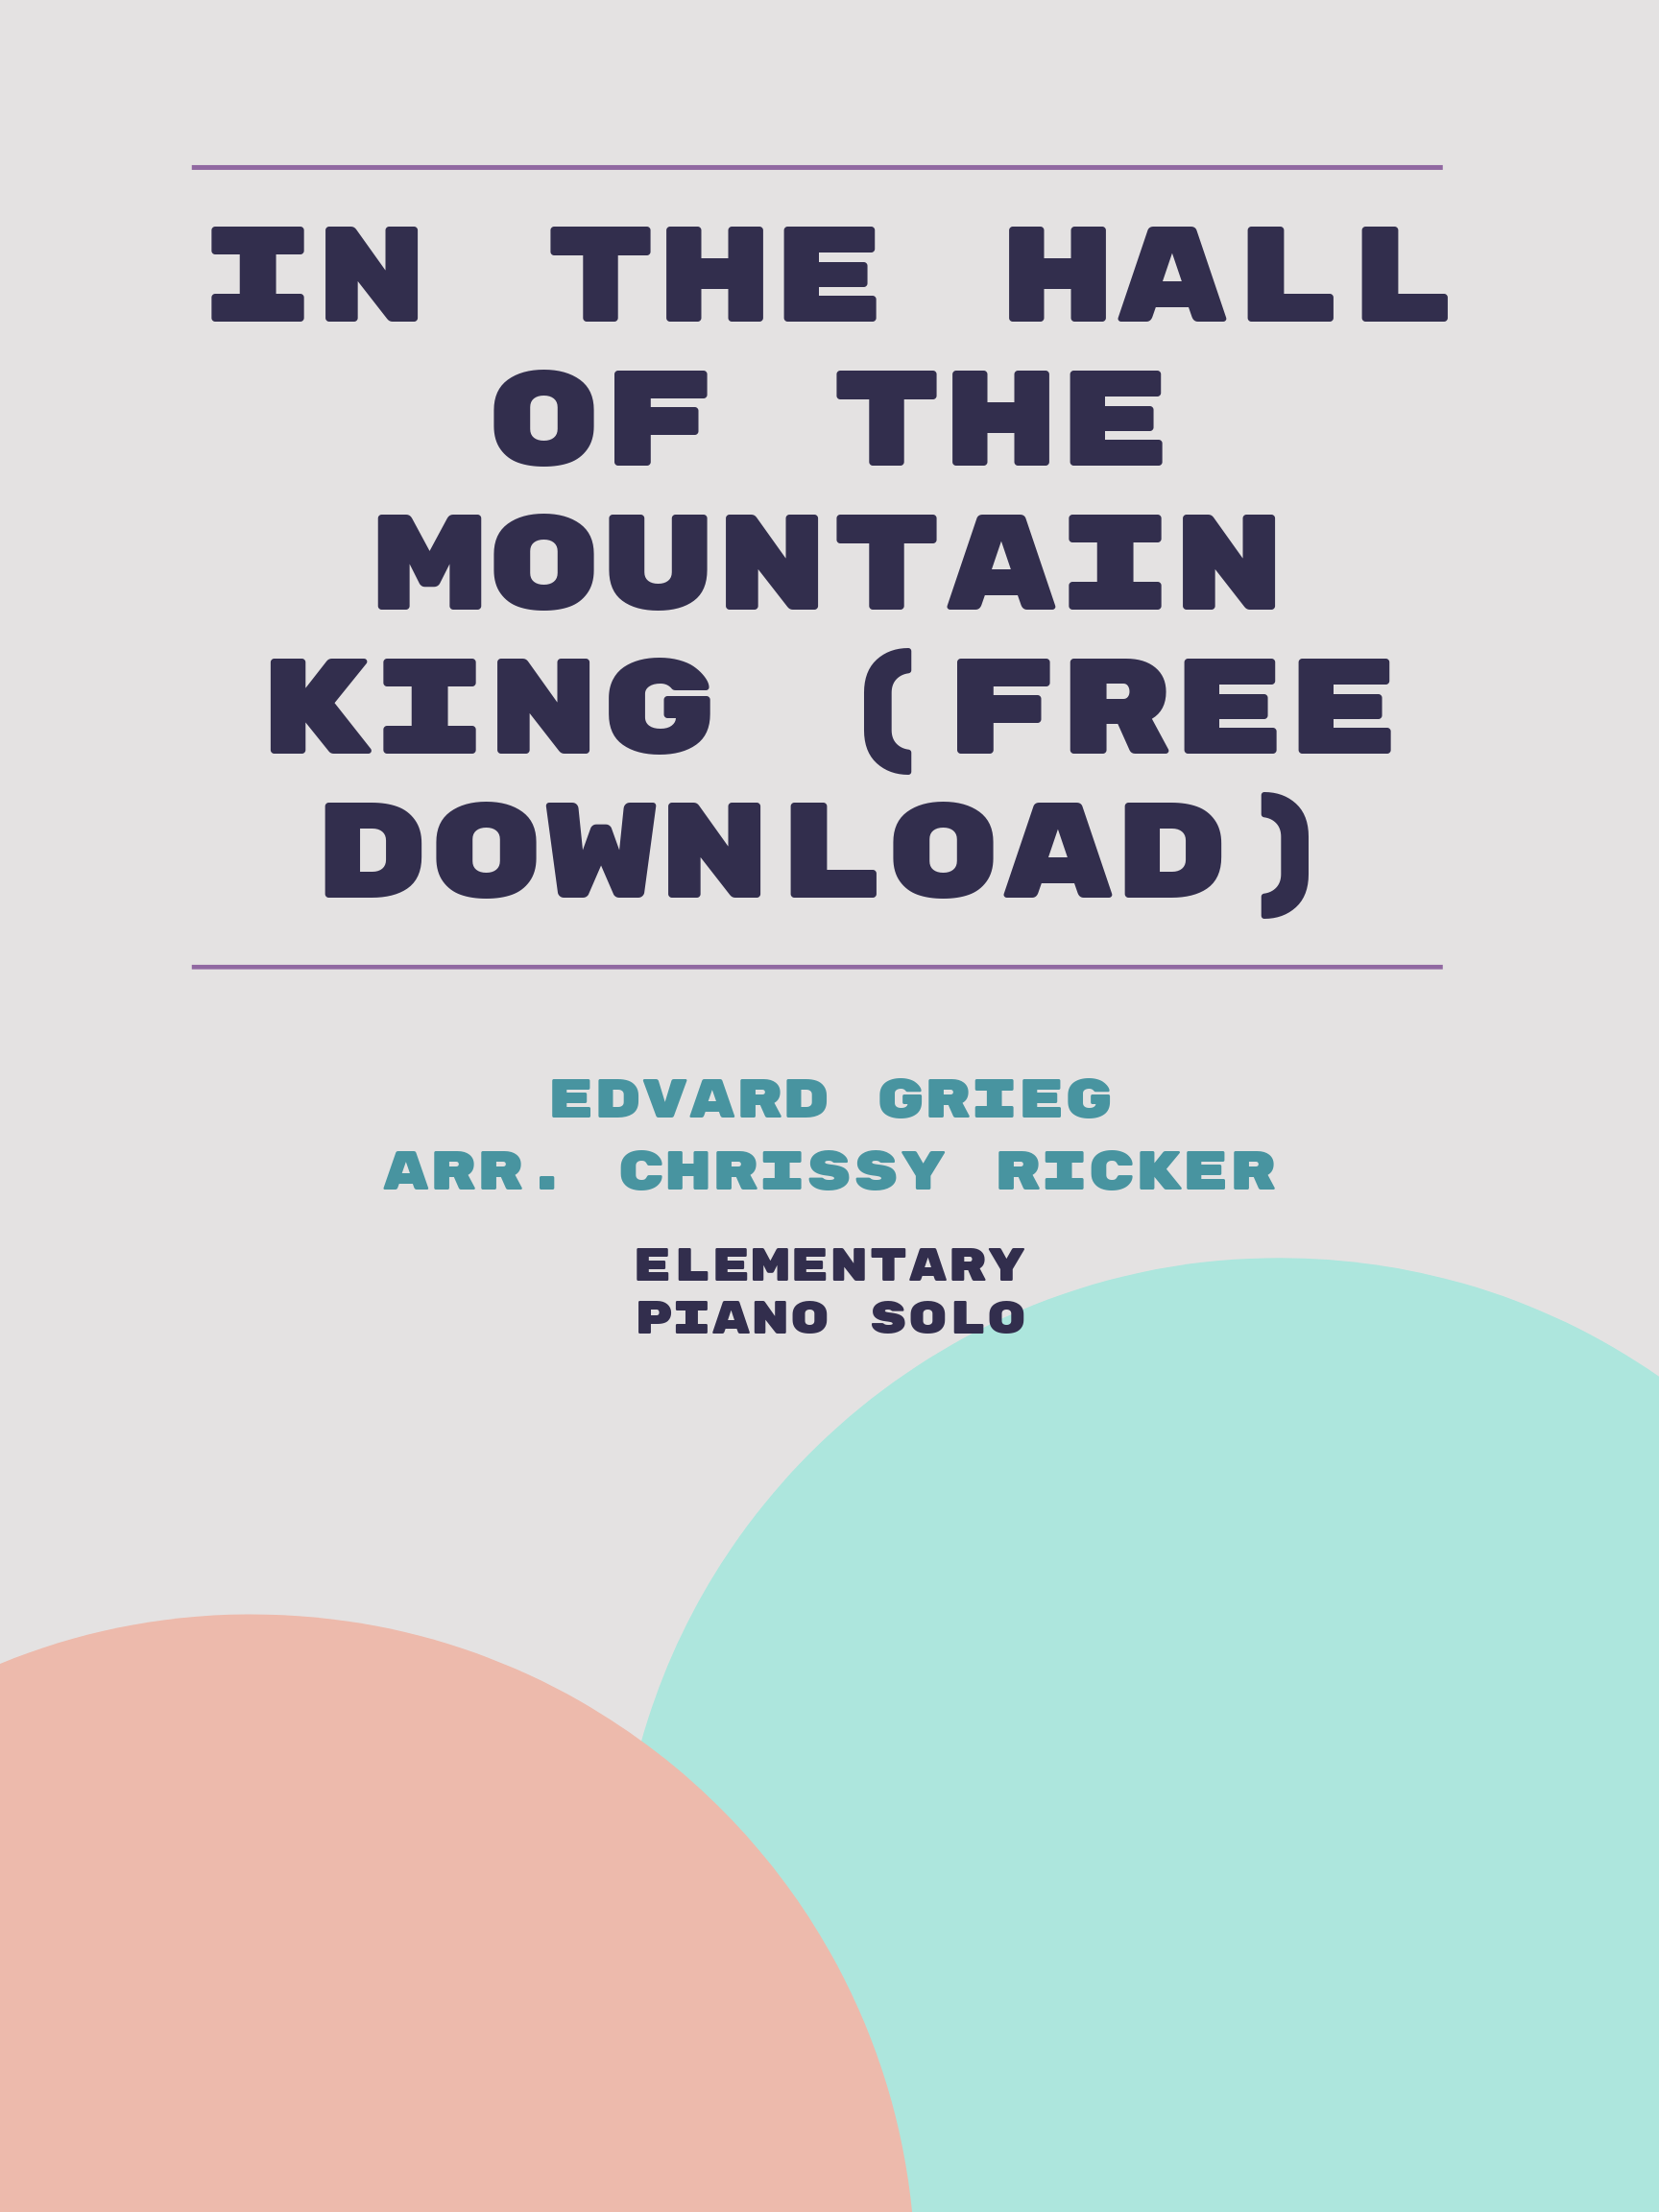 In the Hall of the Mountain King (free download) by Edvard Grieg